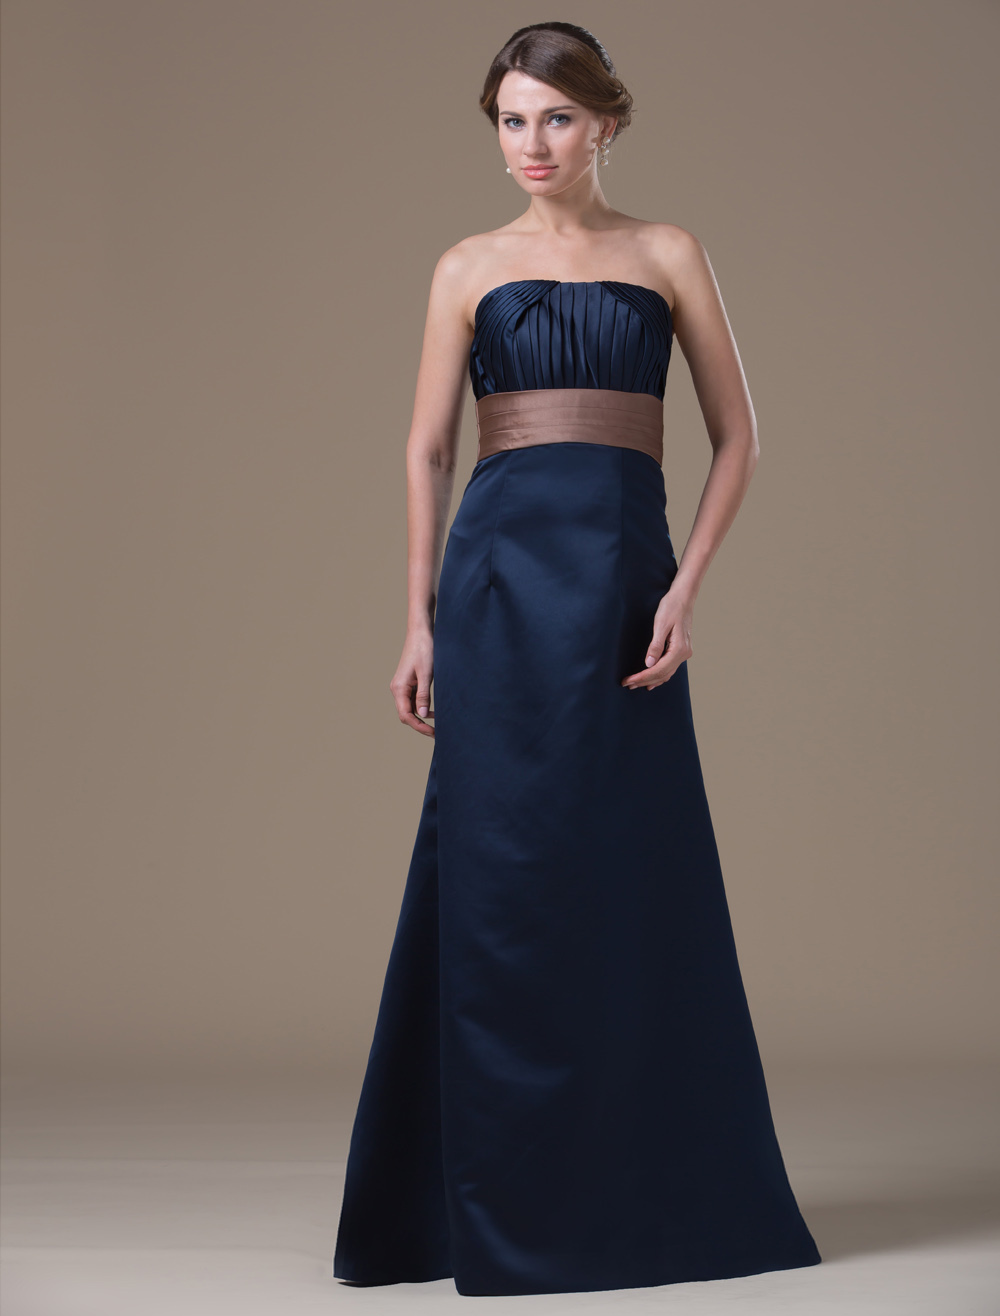 Dark Blue Ball Gown Strapless Satin Floor-length Womens Maternity Bridesmaid Dress